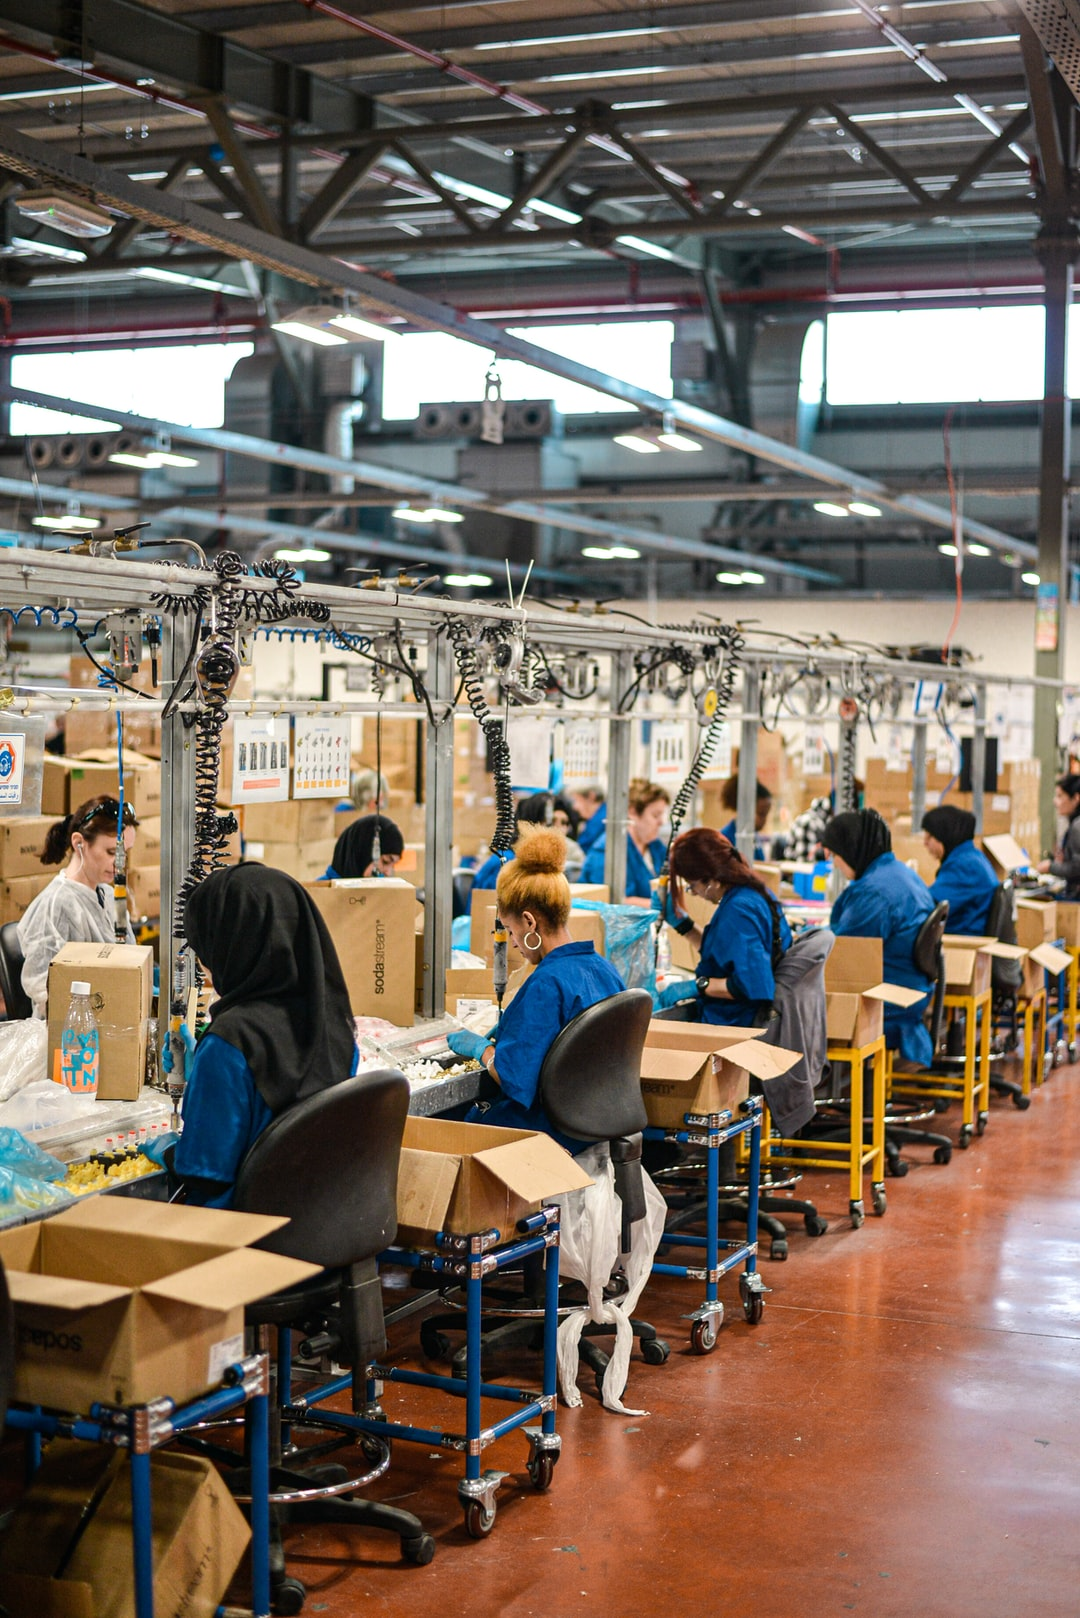 Women working on SodaSteam devices at the SodaStream factory in Israel. Shot during press trip to SodaStream factory in 2019.